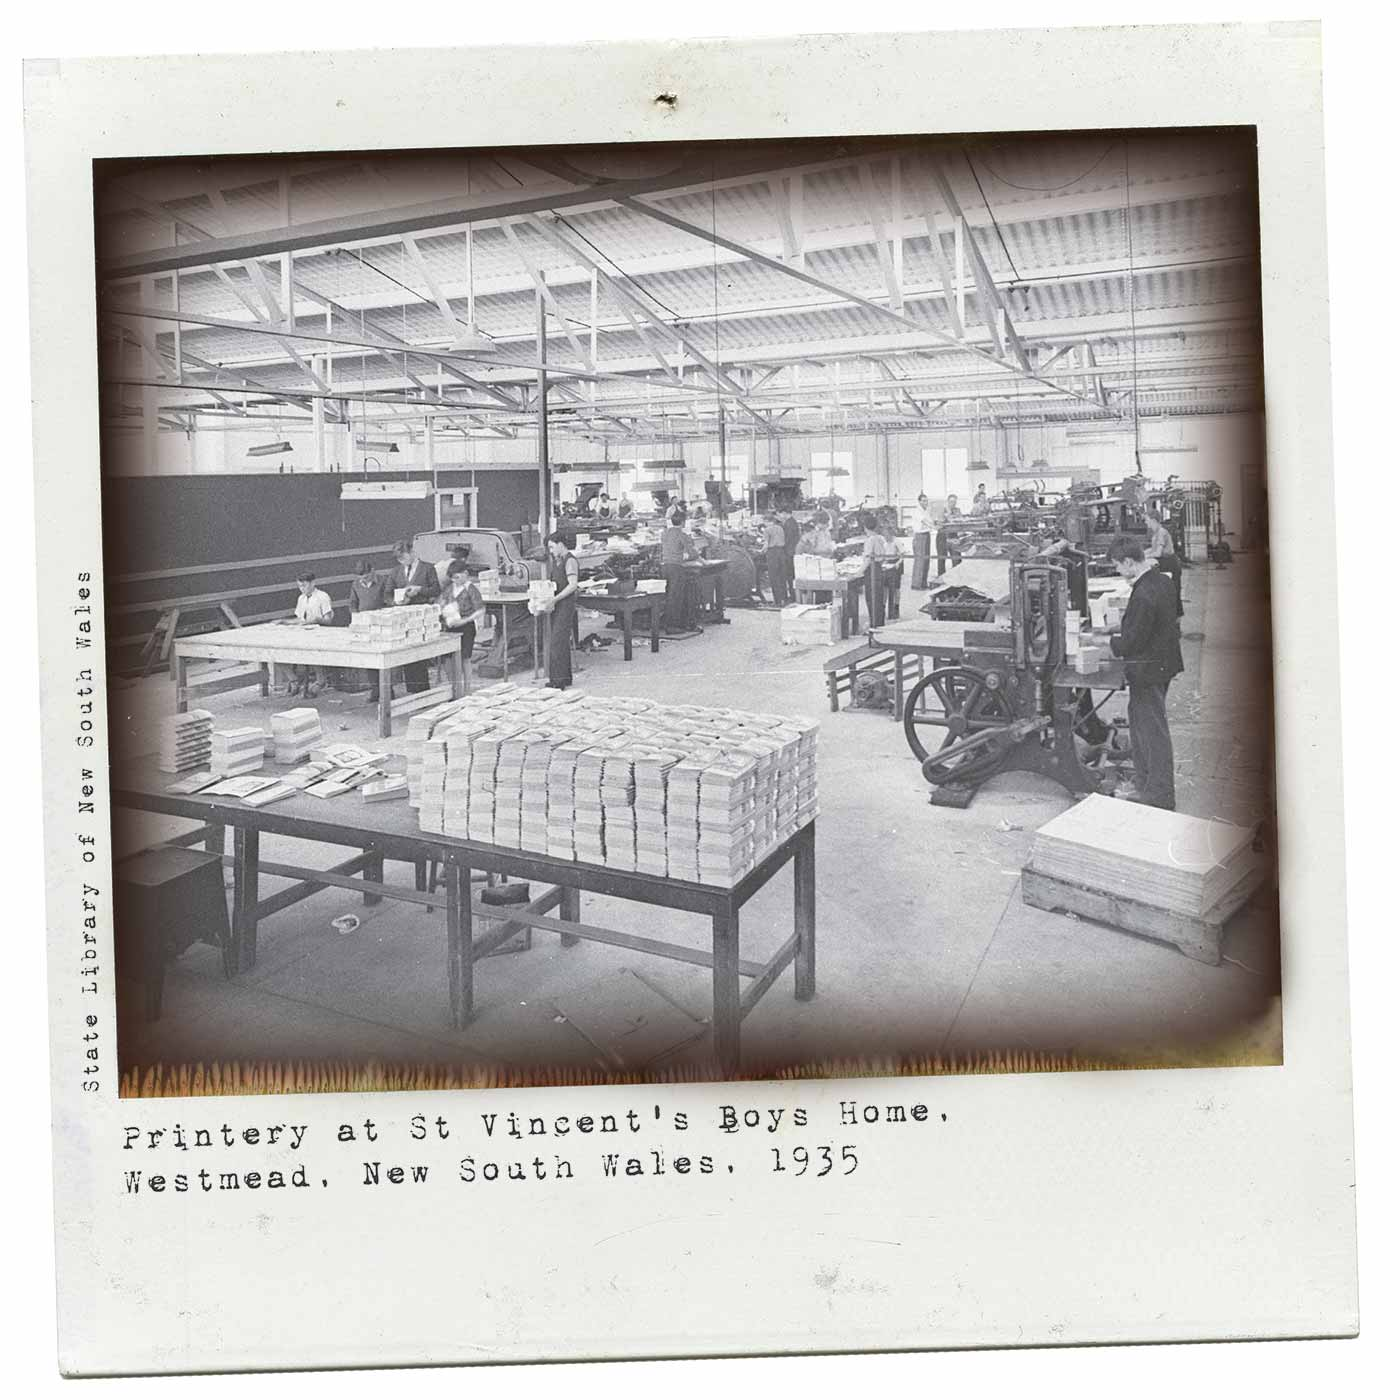 Polaroid photograph showing a large factory floor with various boys working machinery and stacking papers. Typewritten text below reads 'Printery at St Vincent's Boys Home, Westmead, New South Wales, 1935'. 'State Library of New South Wales' is typed along the left side. - click to view larger image